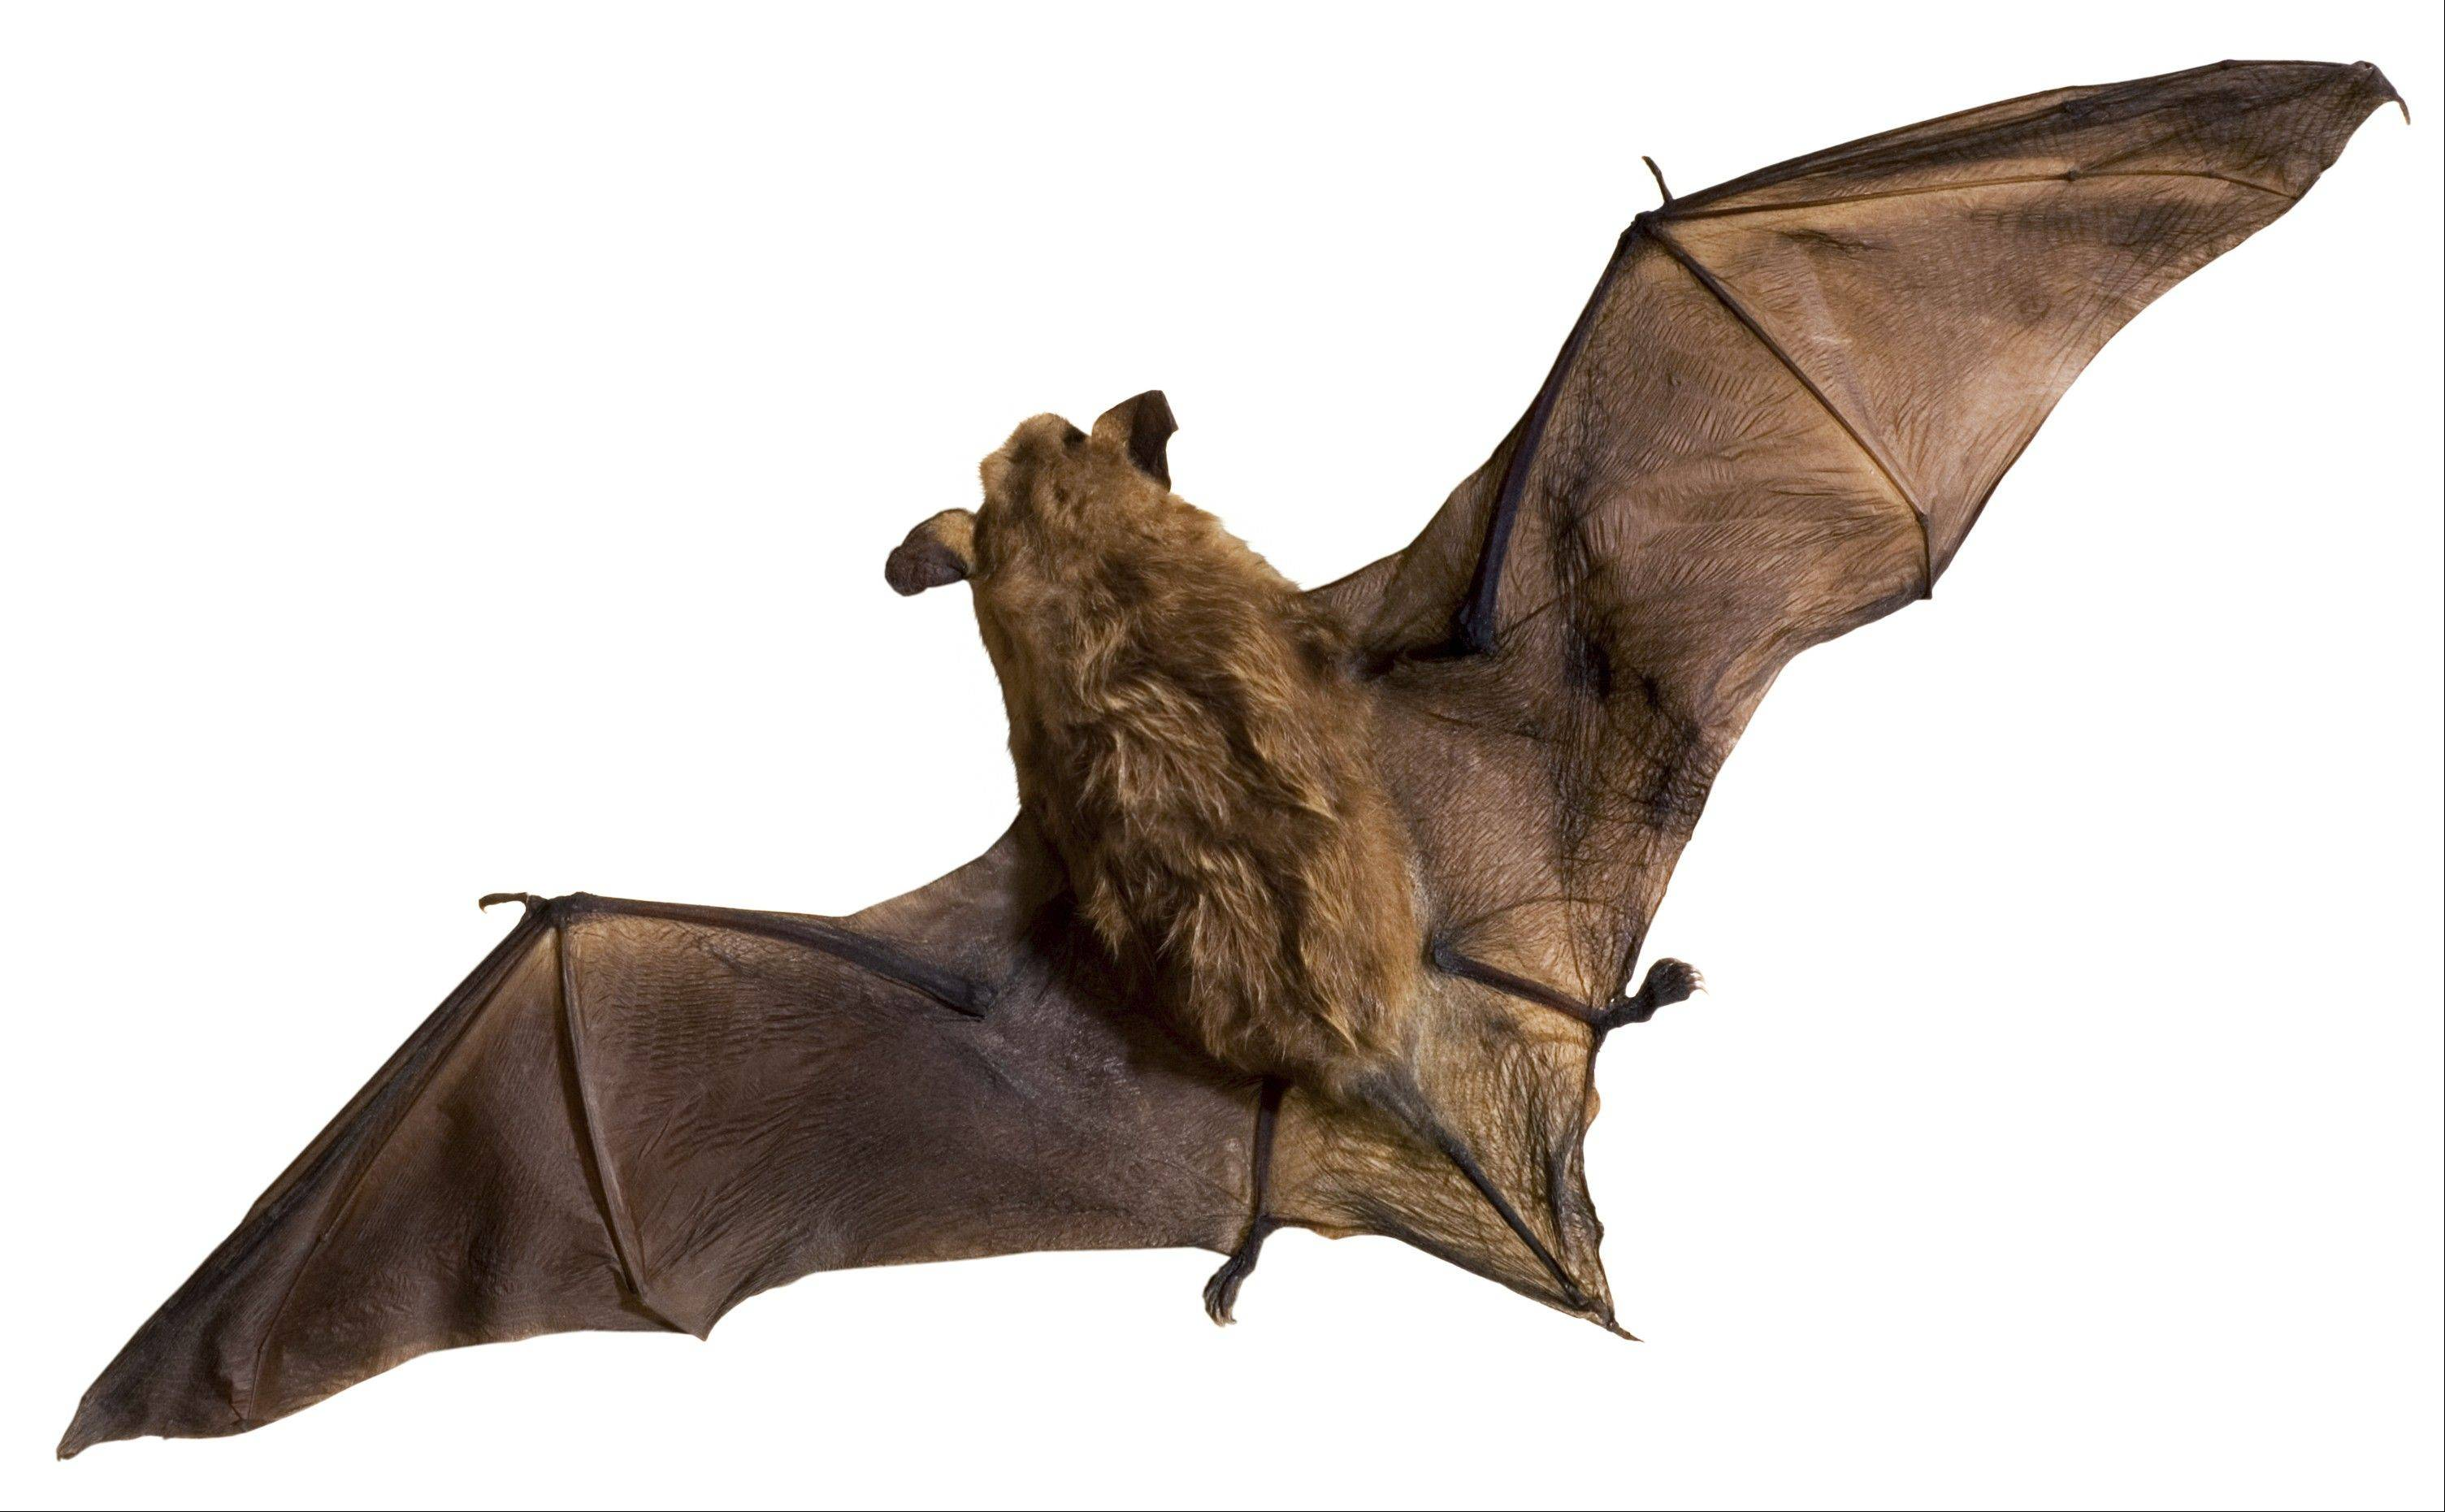 Although some people fear bats, they are actually beneficial to humans by eating large quantities of insects.